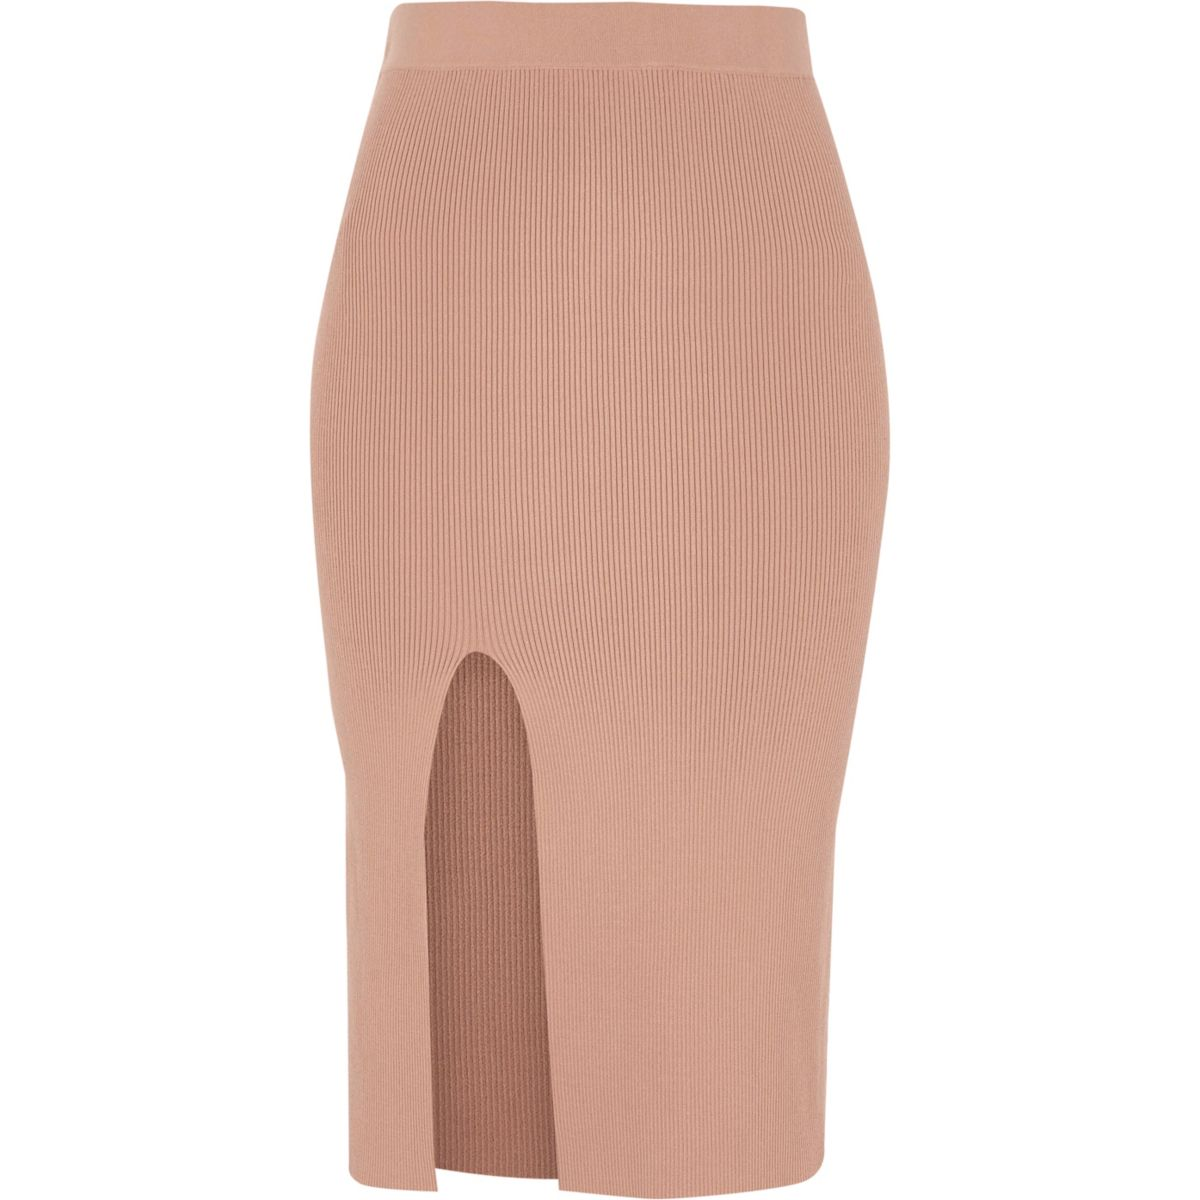 Pink ribbed fitted midi skirt - Skirts - Sale - women